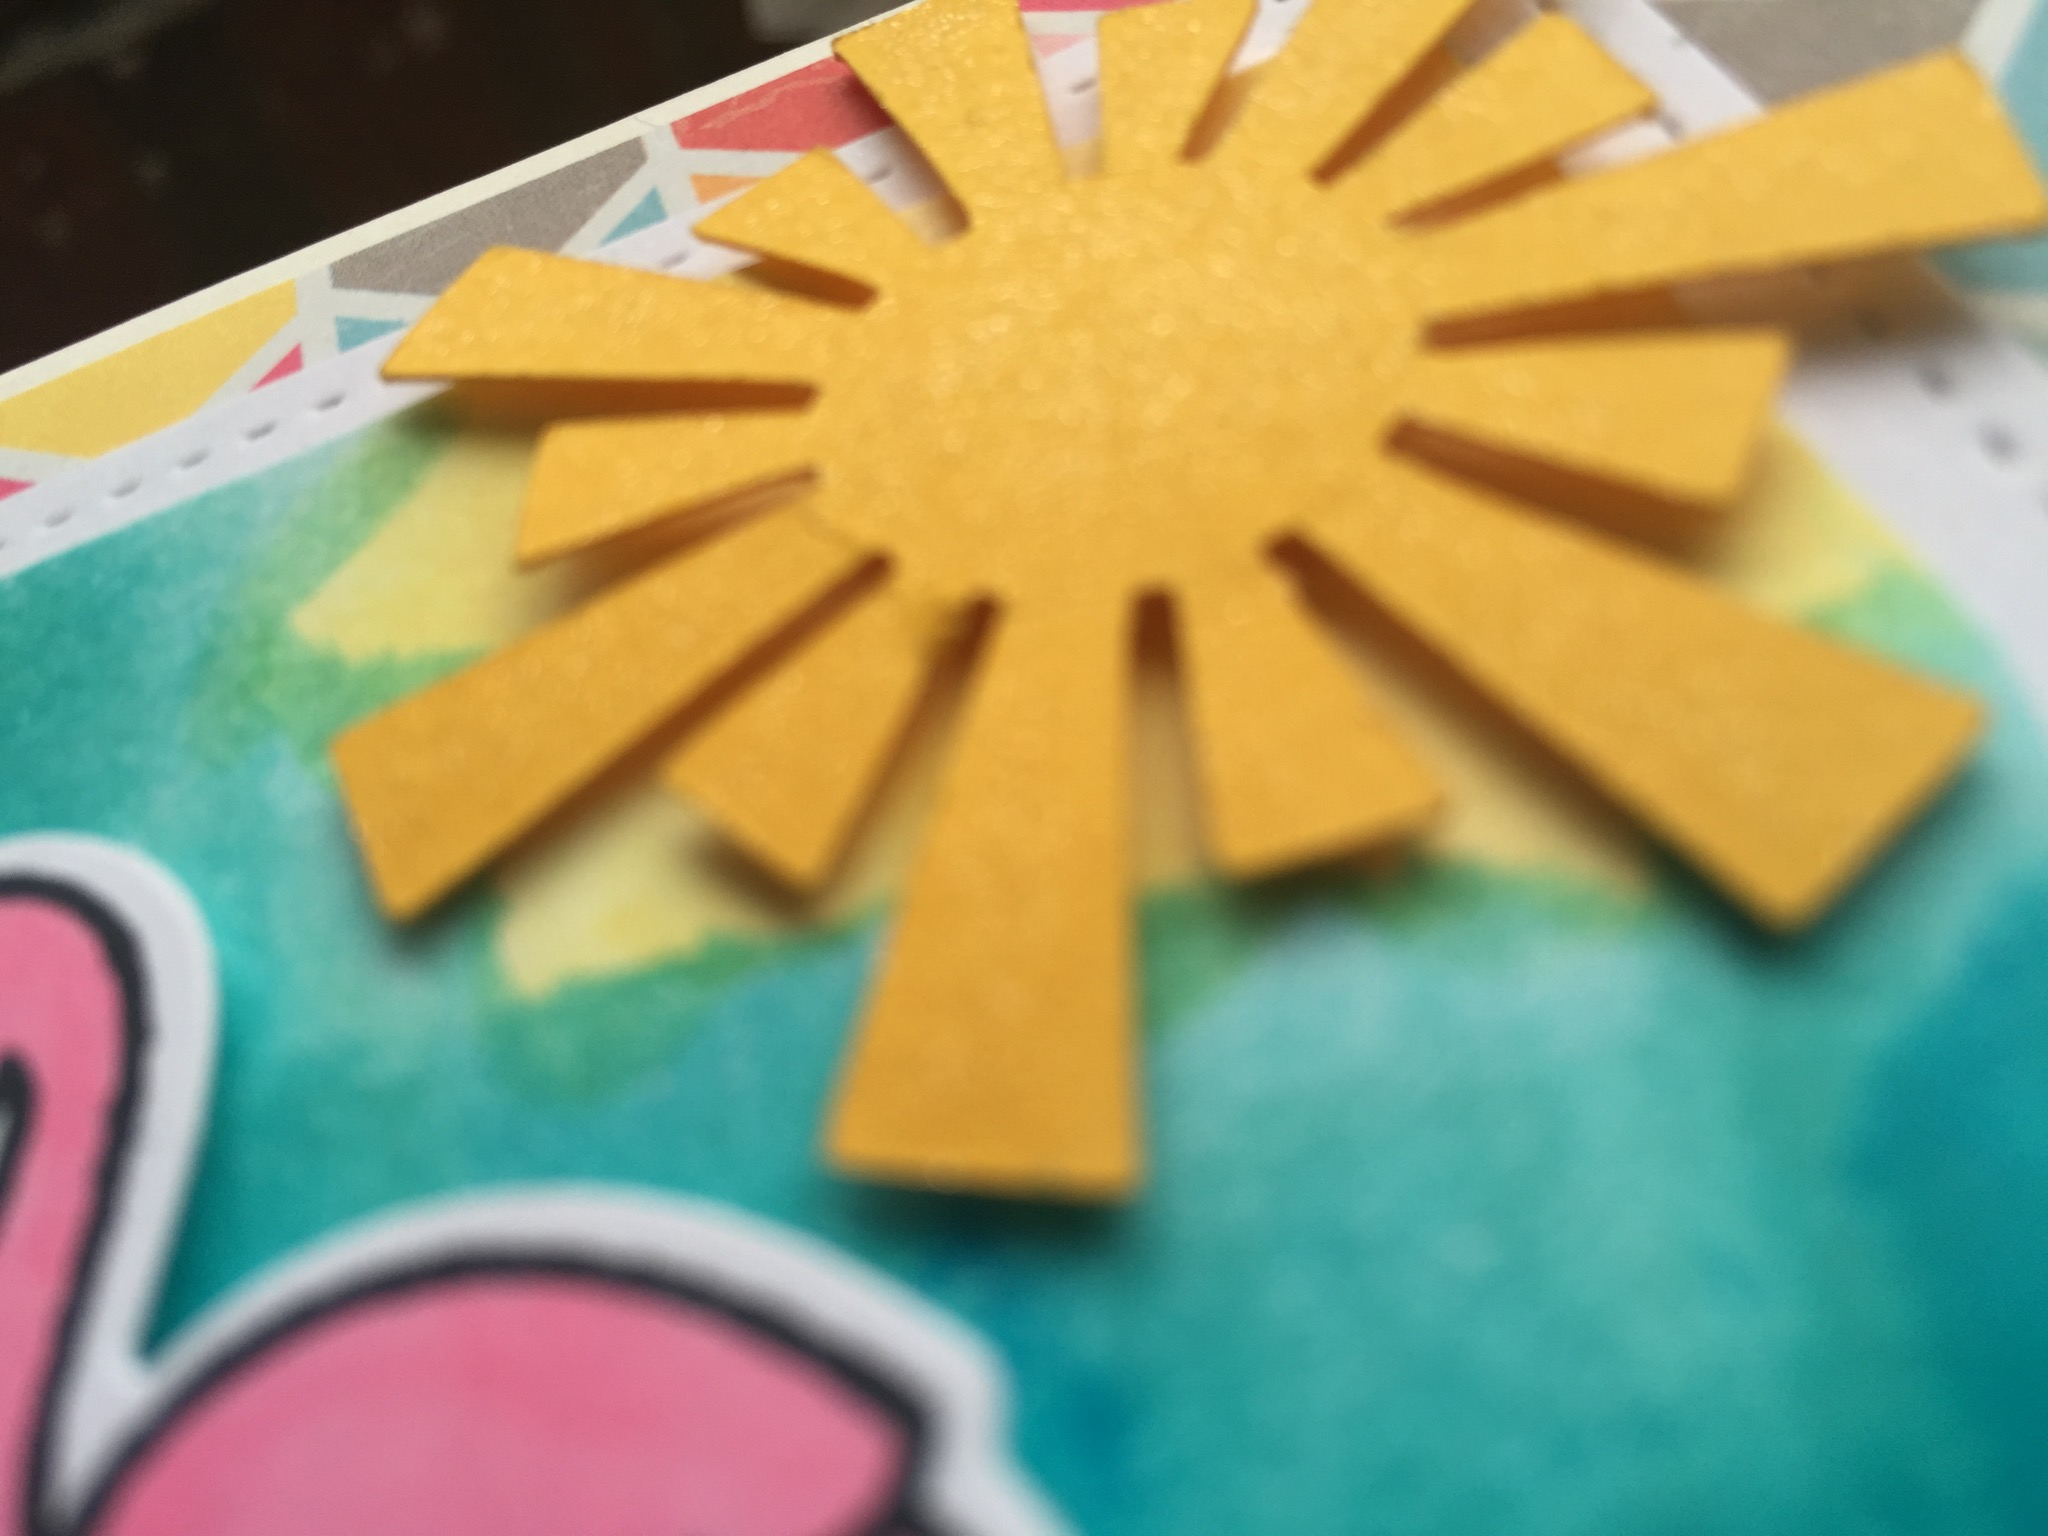 I used a glimmer pen on the sun for an added pop...